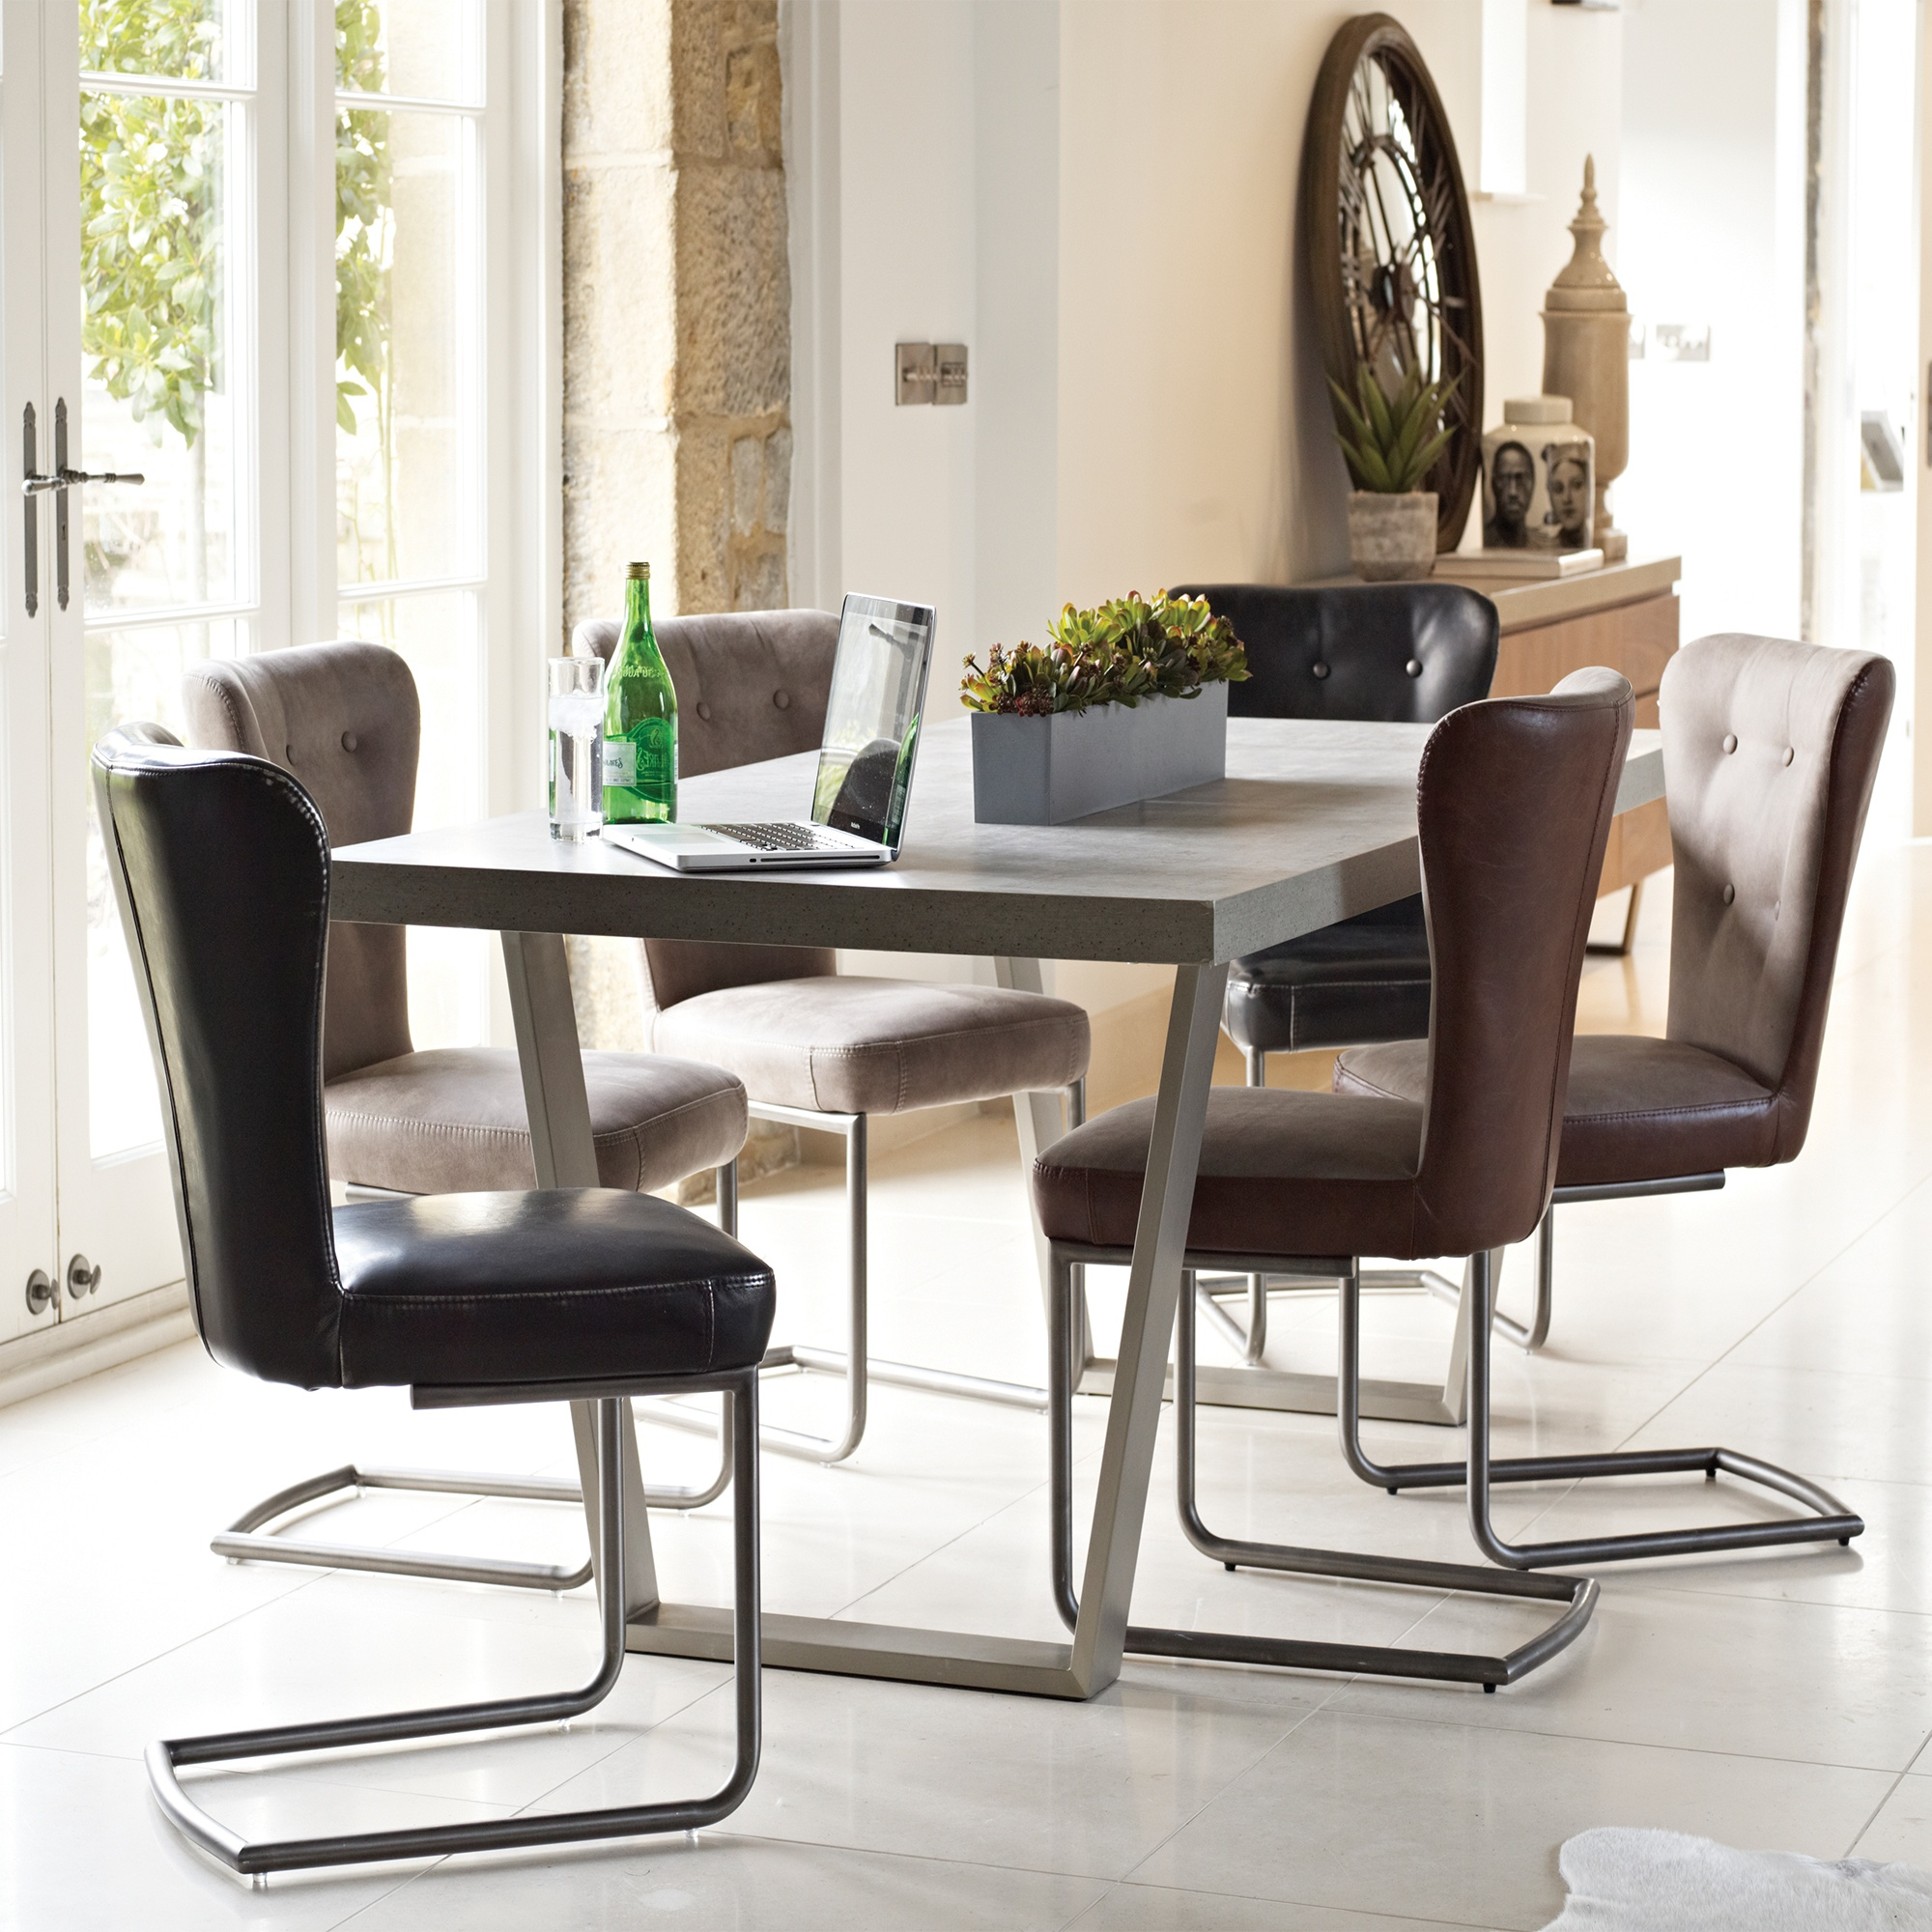 Dining Collections: Cookes Collection Urban Large Dining Table And 6 Chairs